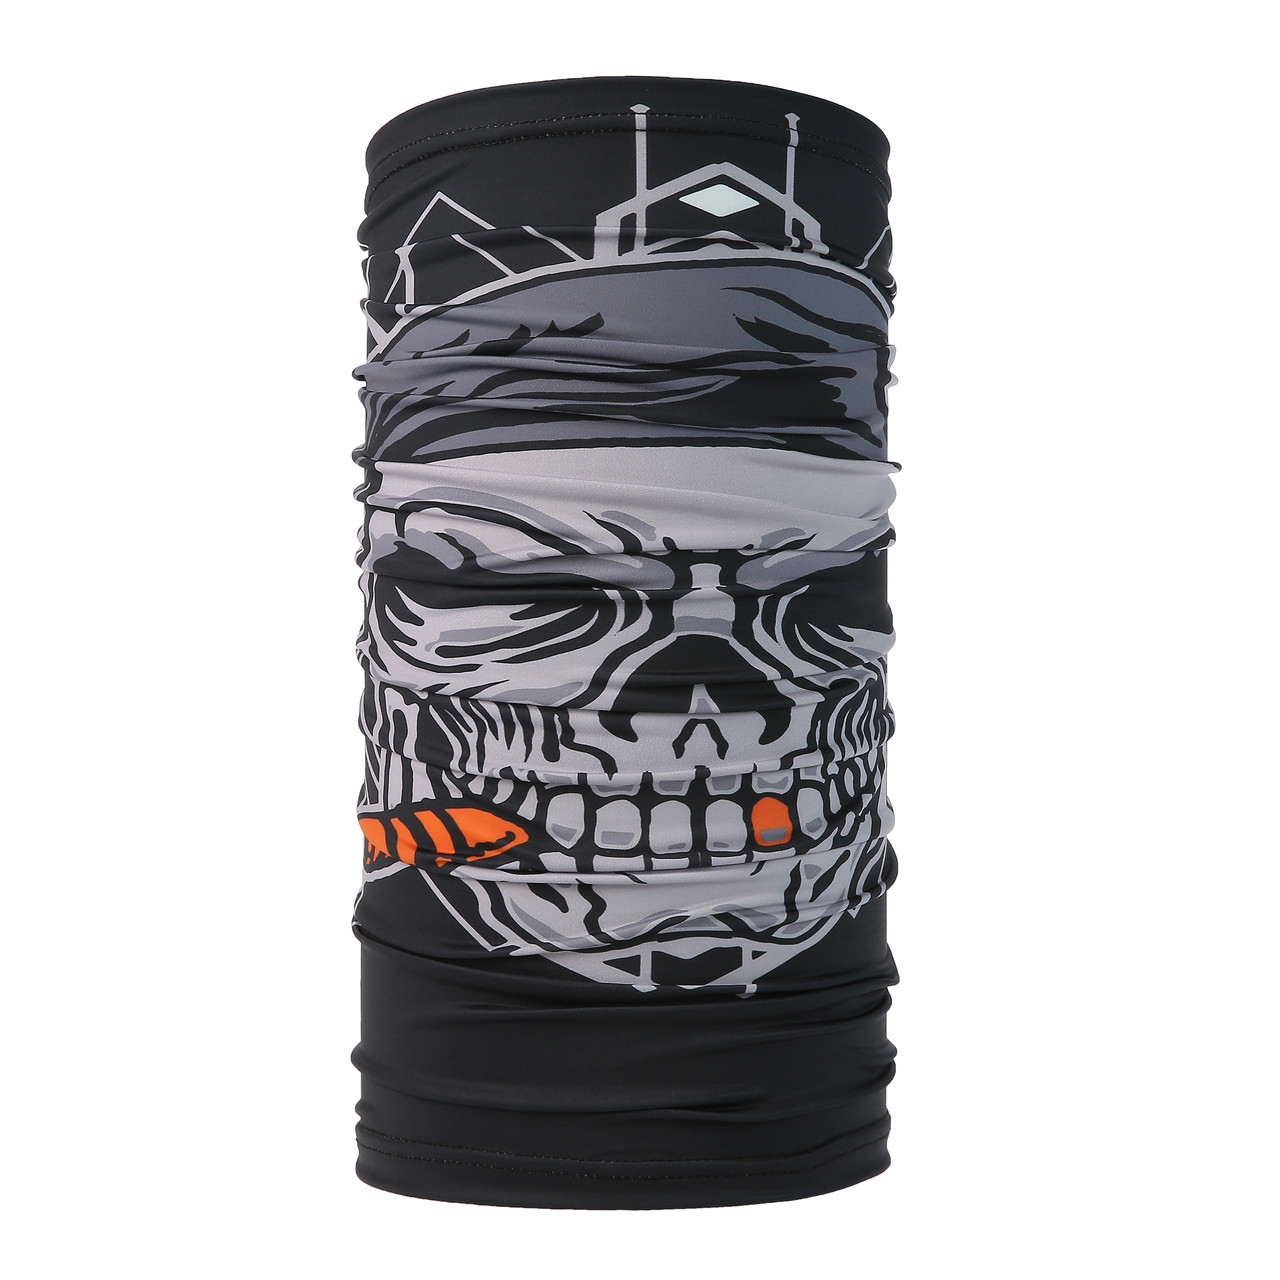 Smoking Skull Design Face Mask UV Protective (6 pcs.)